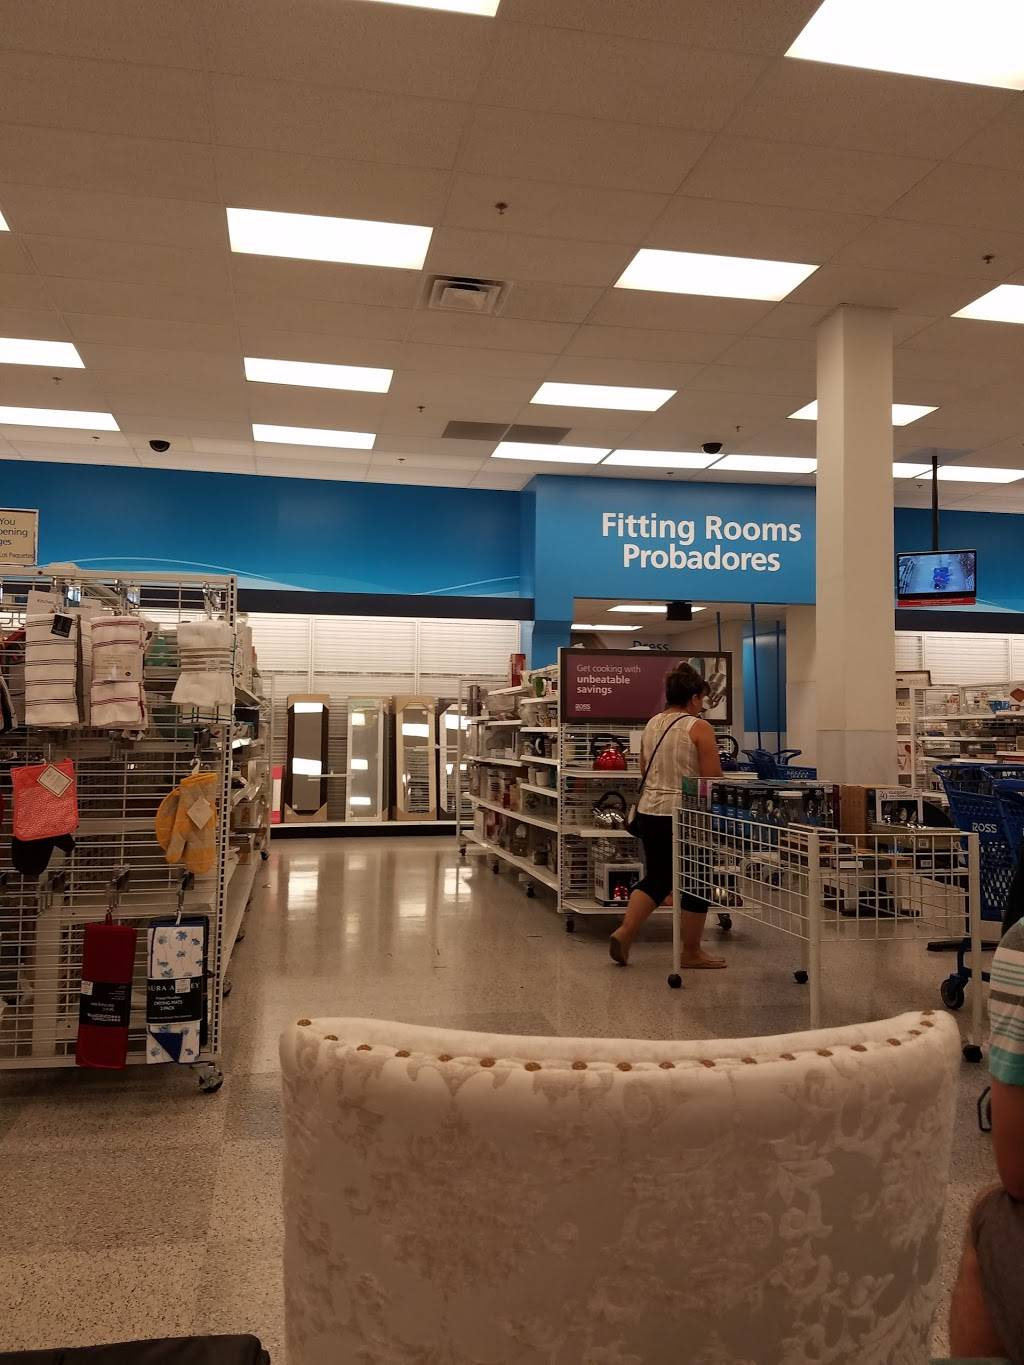 Ross Dress for Less - clothing store  | Photo 2 of 8 | Address: 2483 Naglee Rd, Tracy, CA 95304, USA | Phone: (209) 830-1182